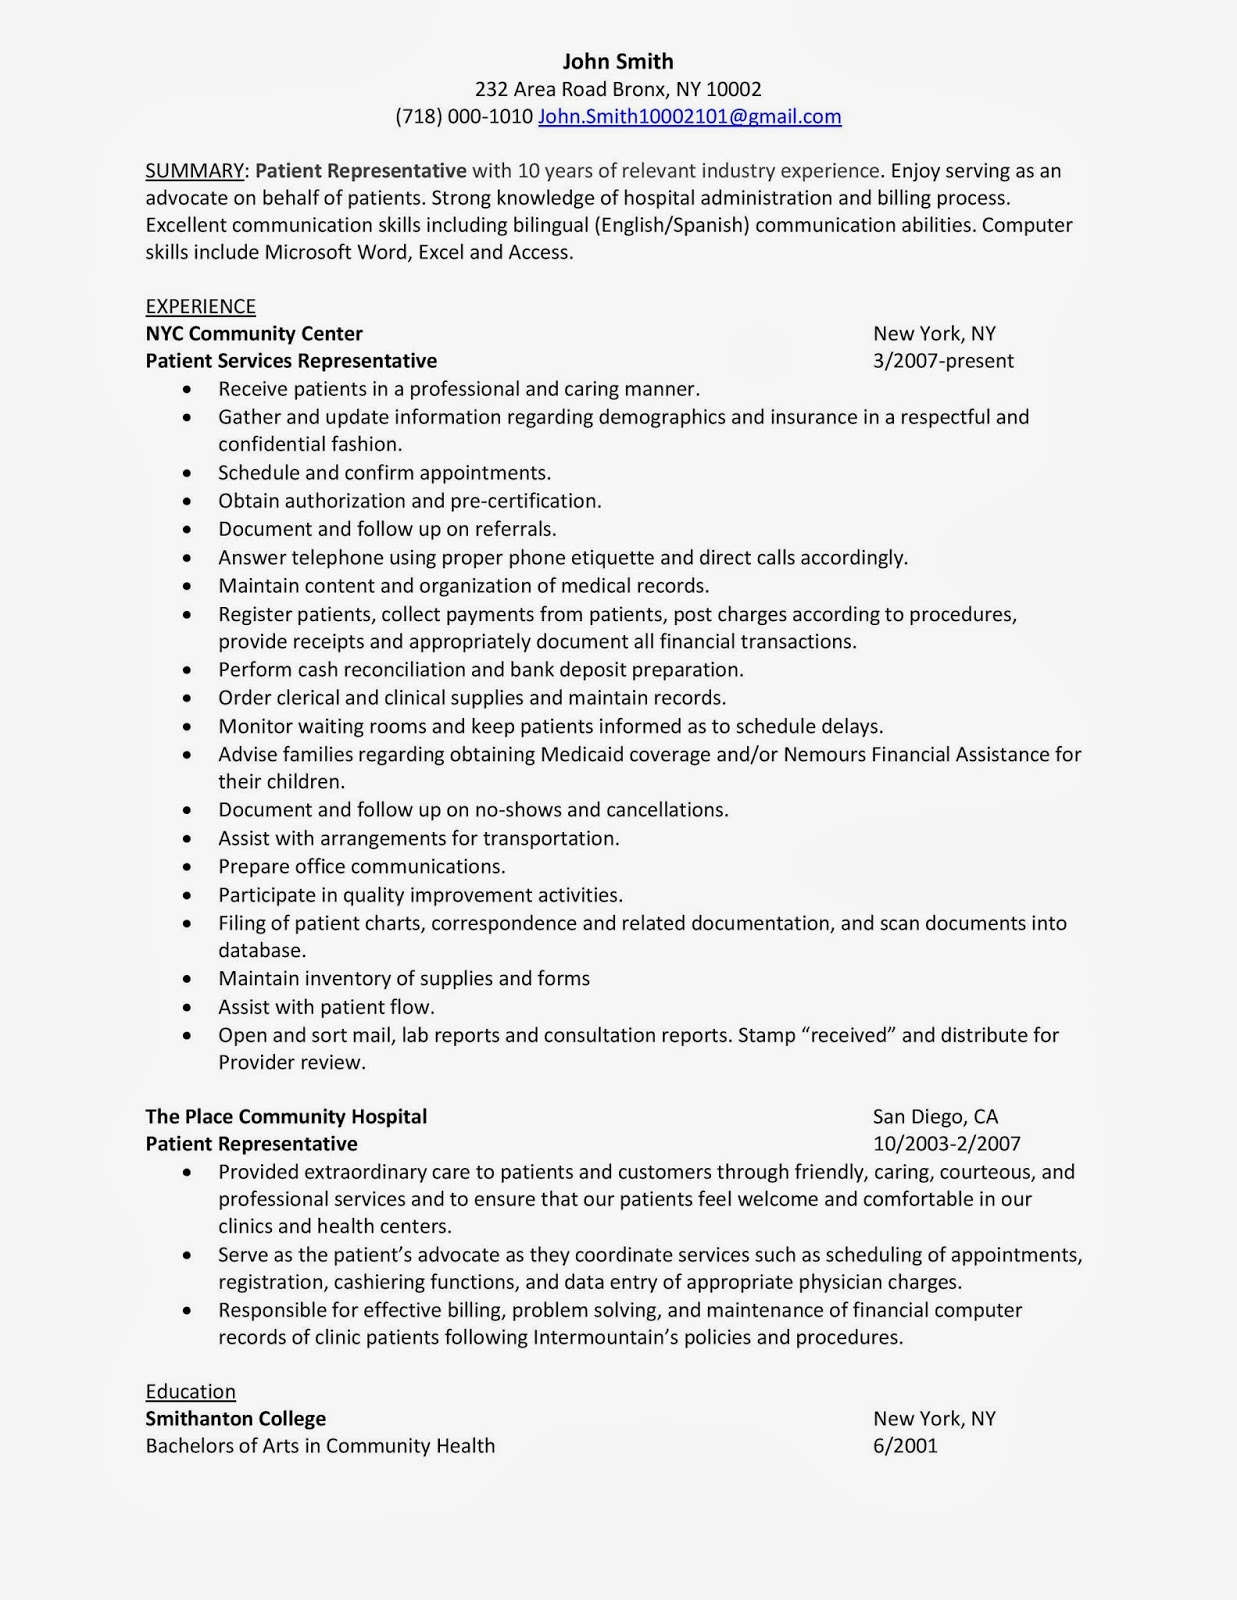 Wrestling Resume Patient Representative Sample Resume Career Advice Pro